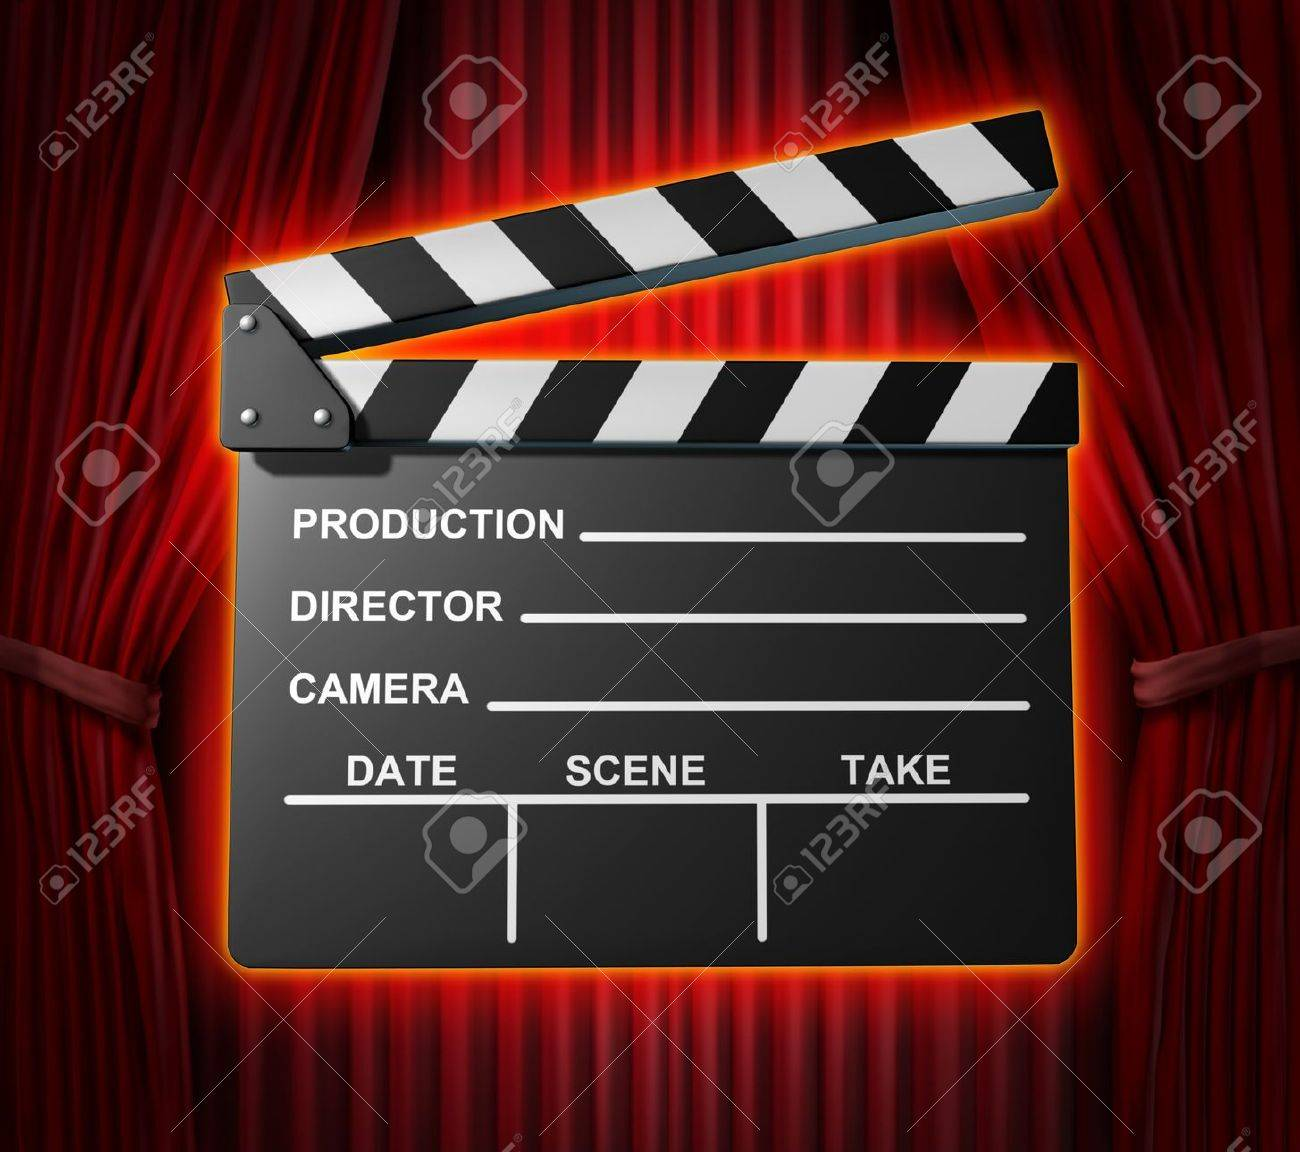 Black Clapperboard Movies Symbol Represented By A Film Slate Stock Photo Picture And Royalty Free Image 10909940